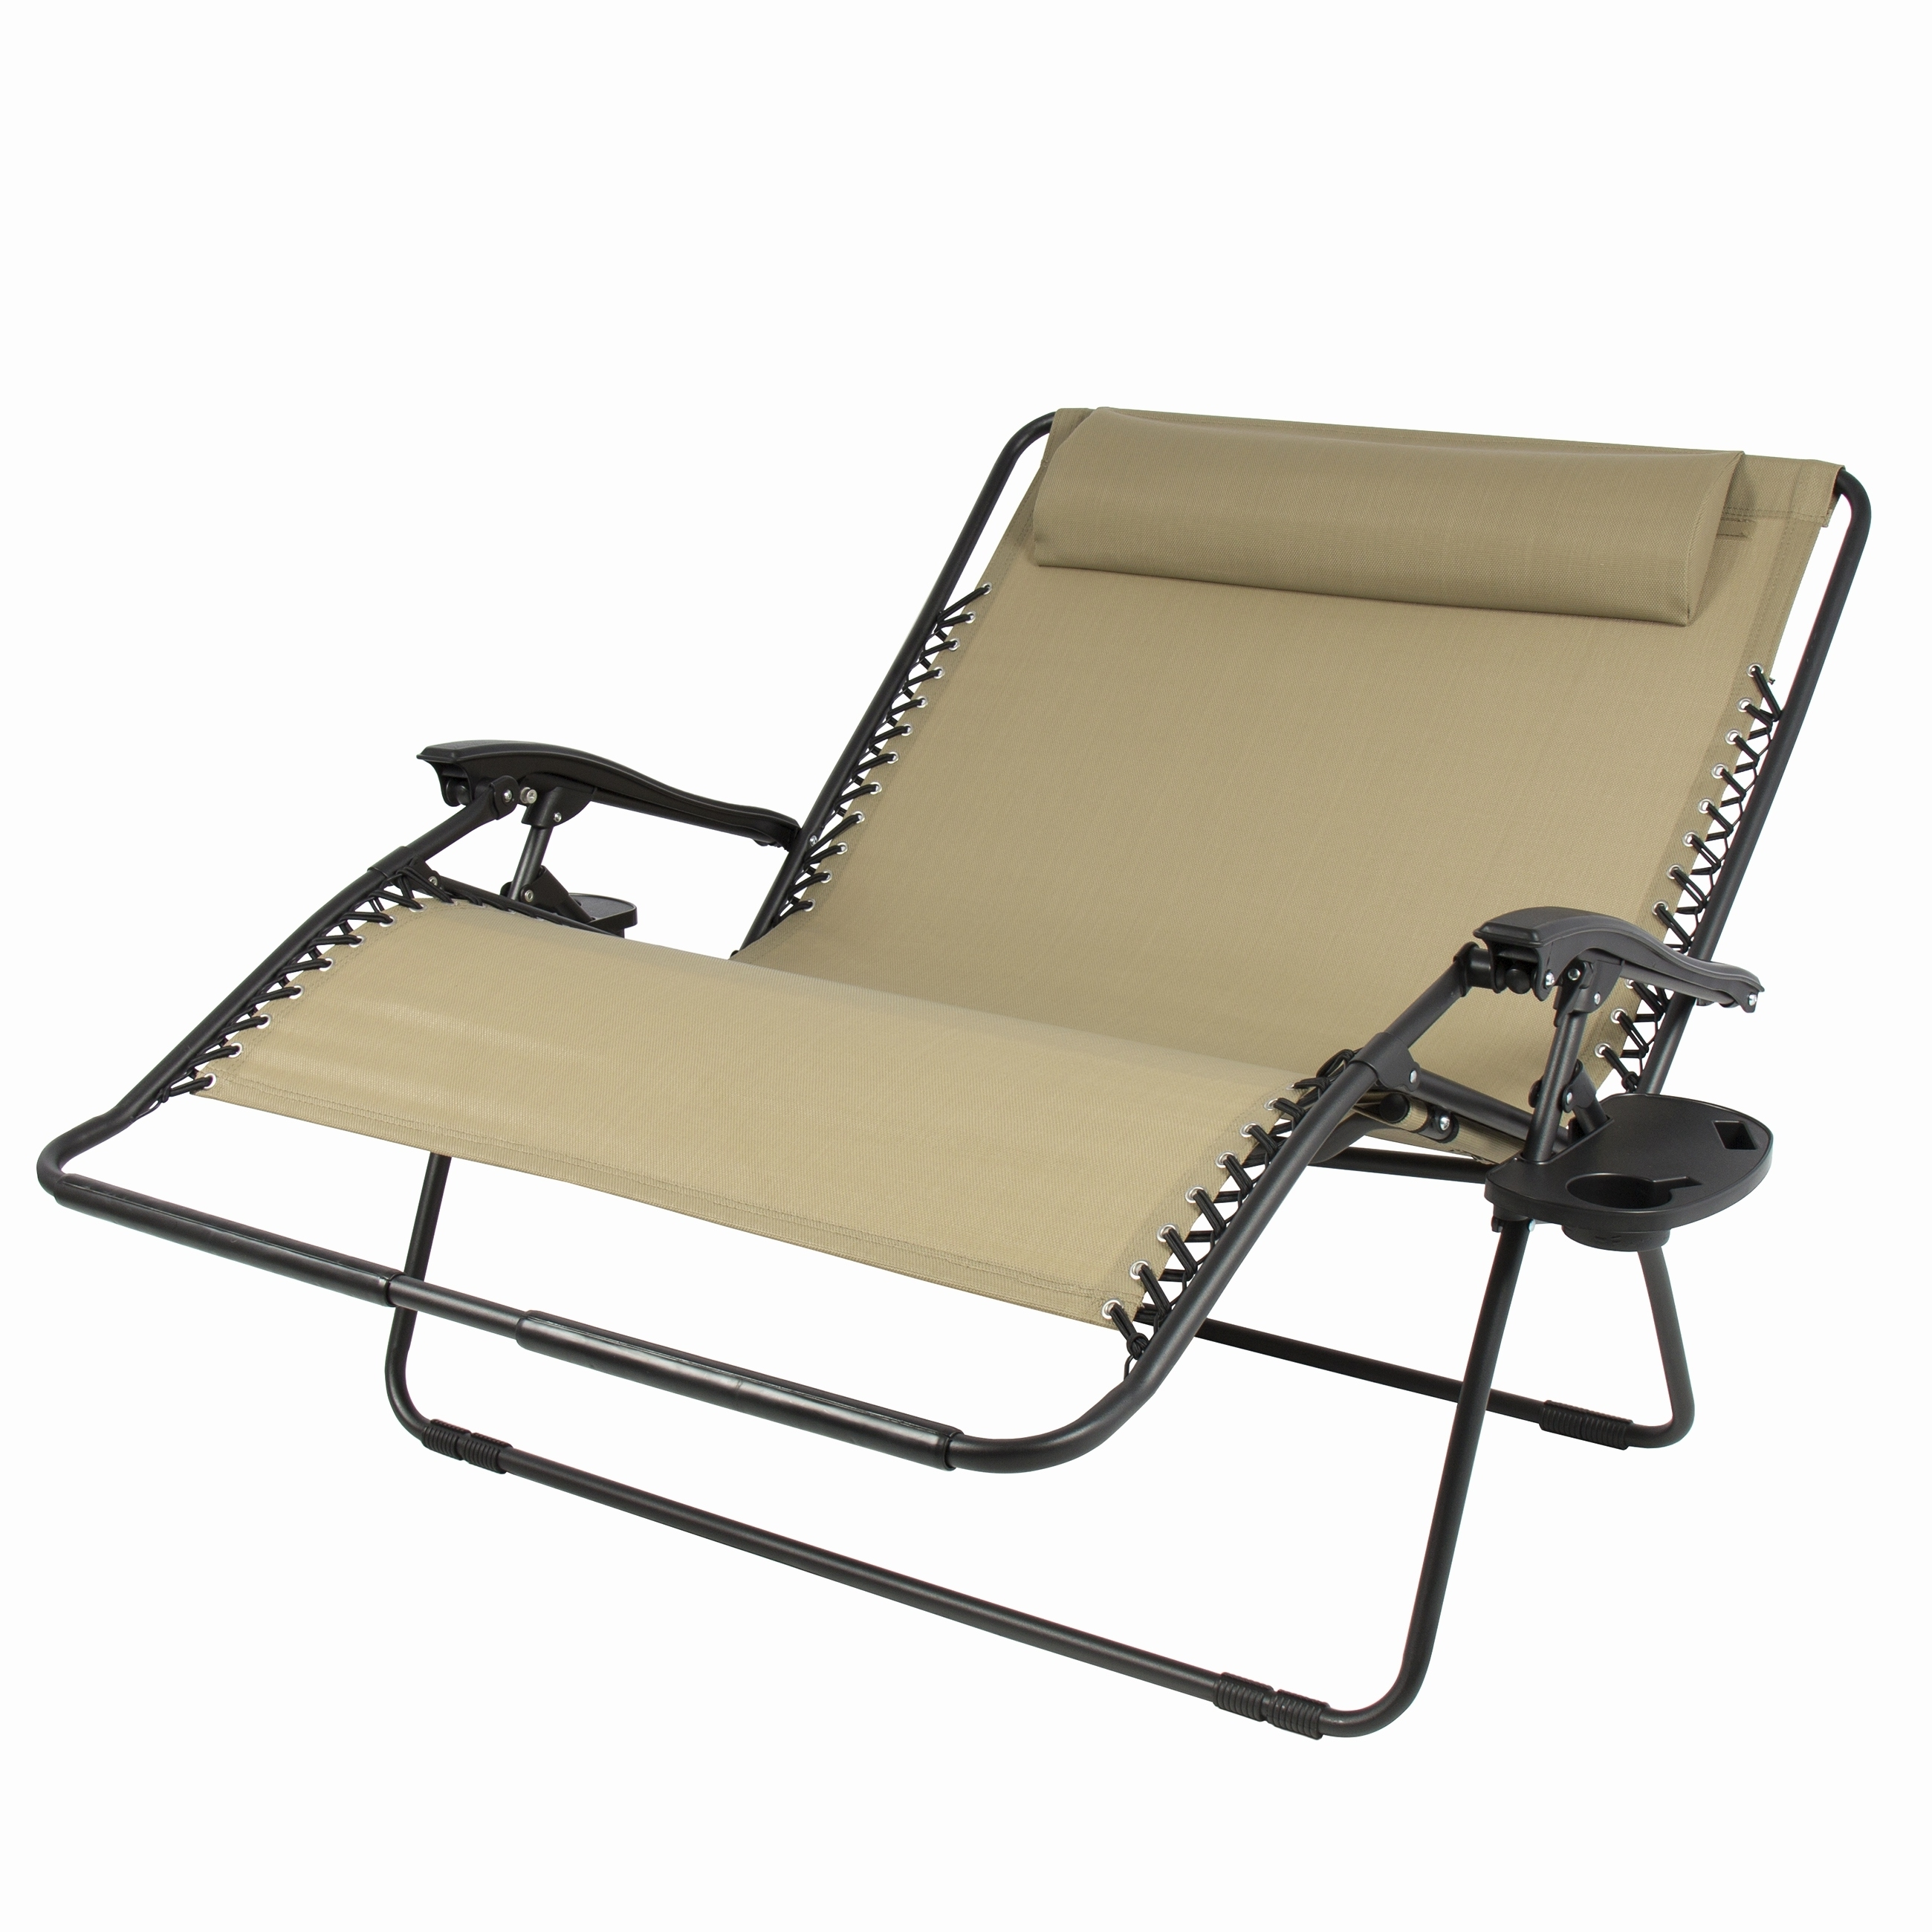 Outdoor Lounge Chairs Clearance Outdoor Chaise Lounge Chairs Clearance Easy Home